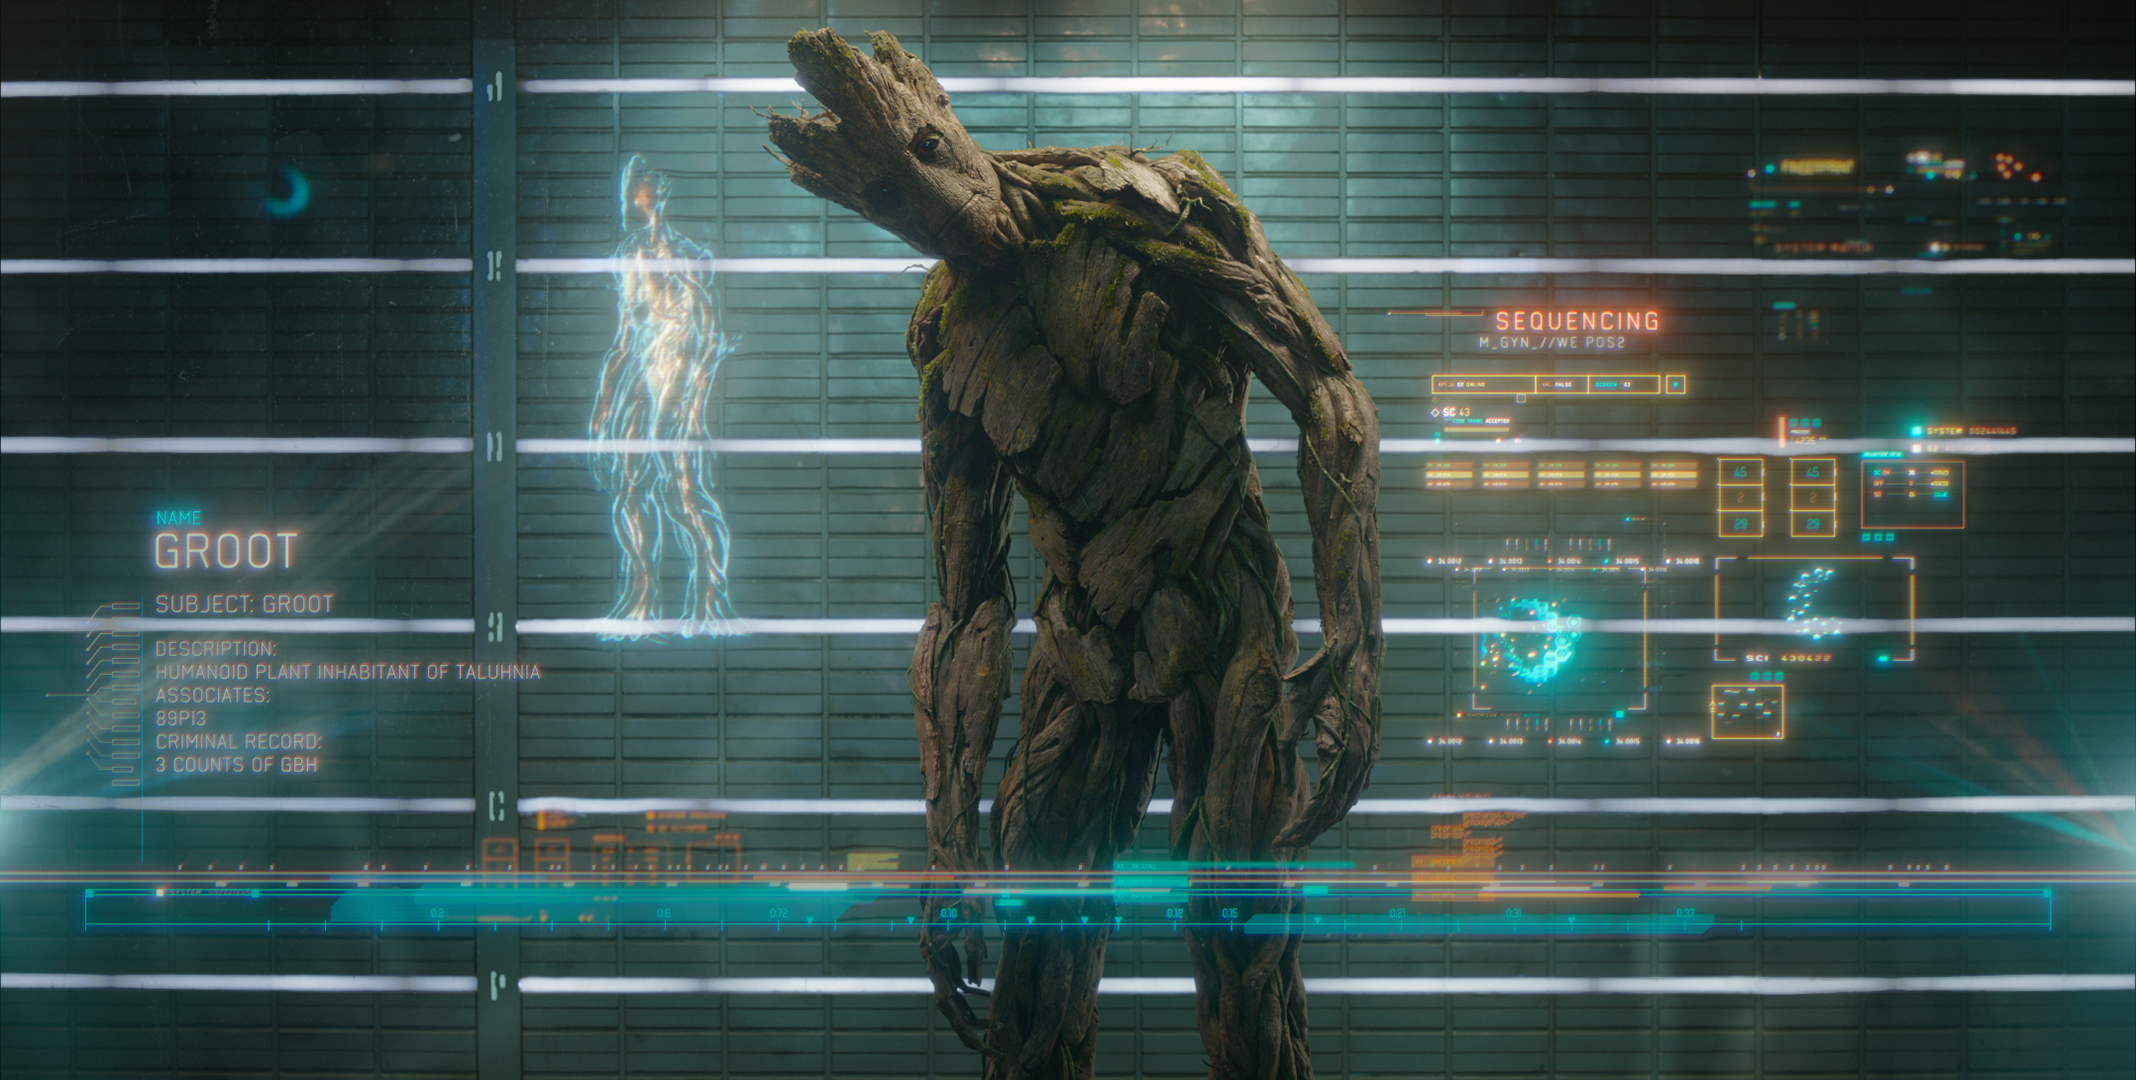 the_guardians_of_the_galaxy_5.jpg